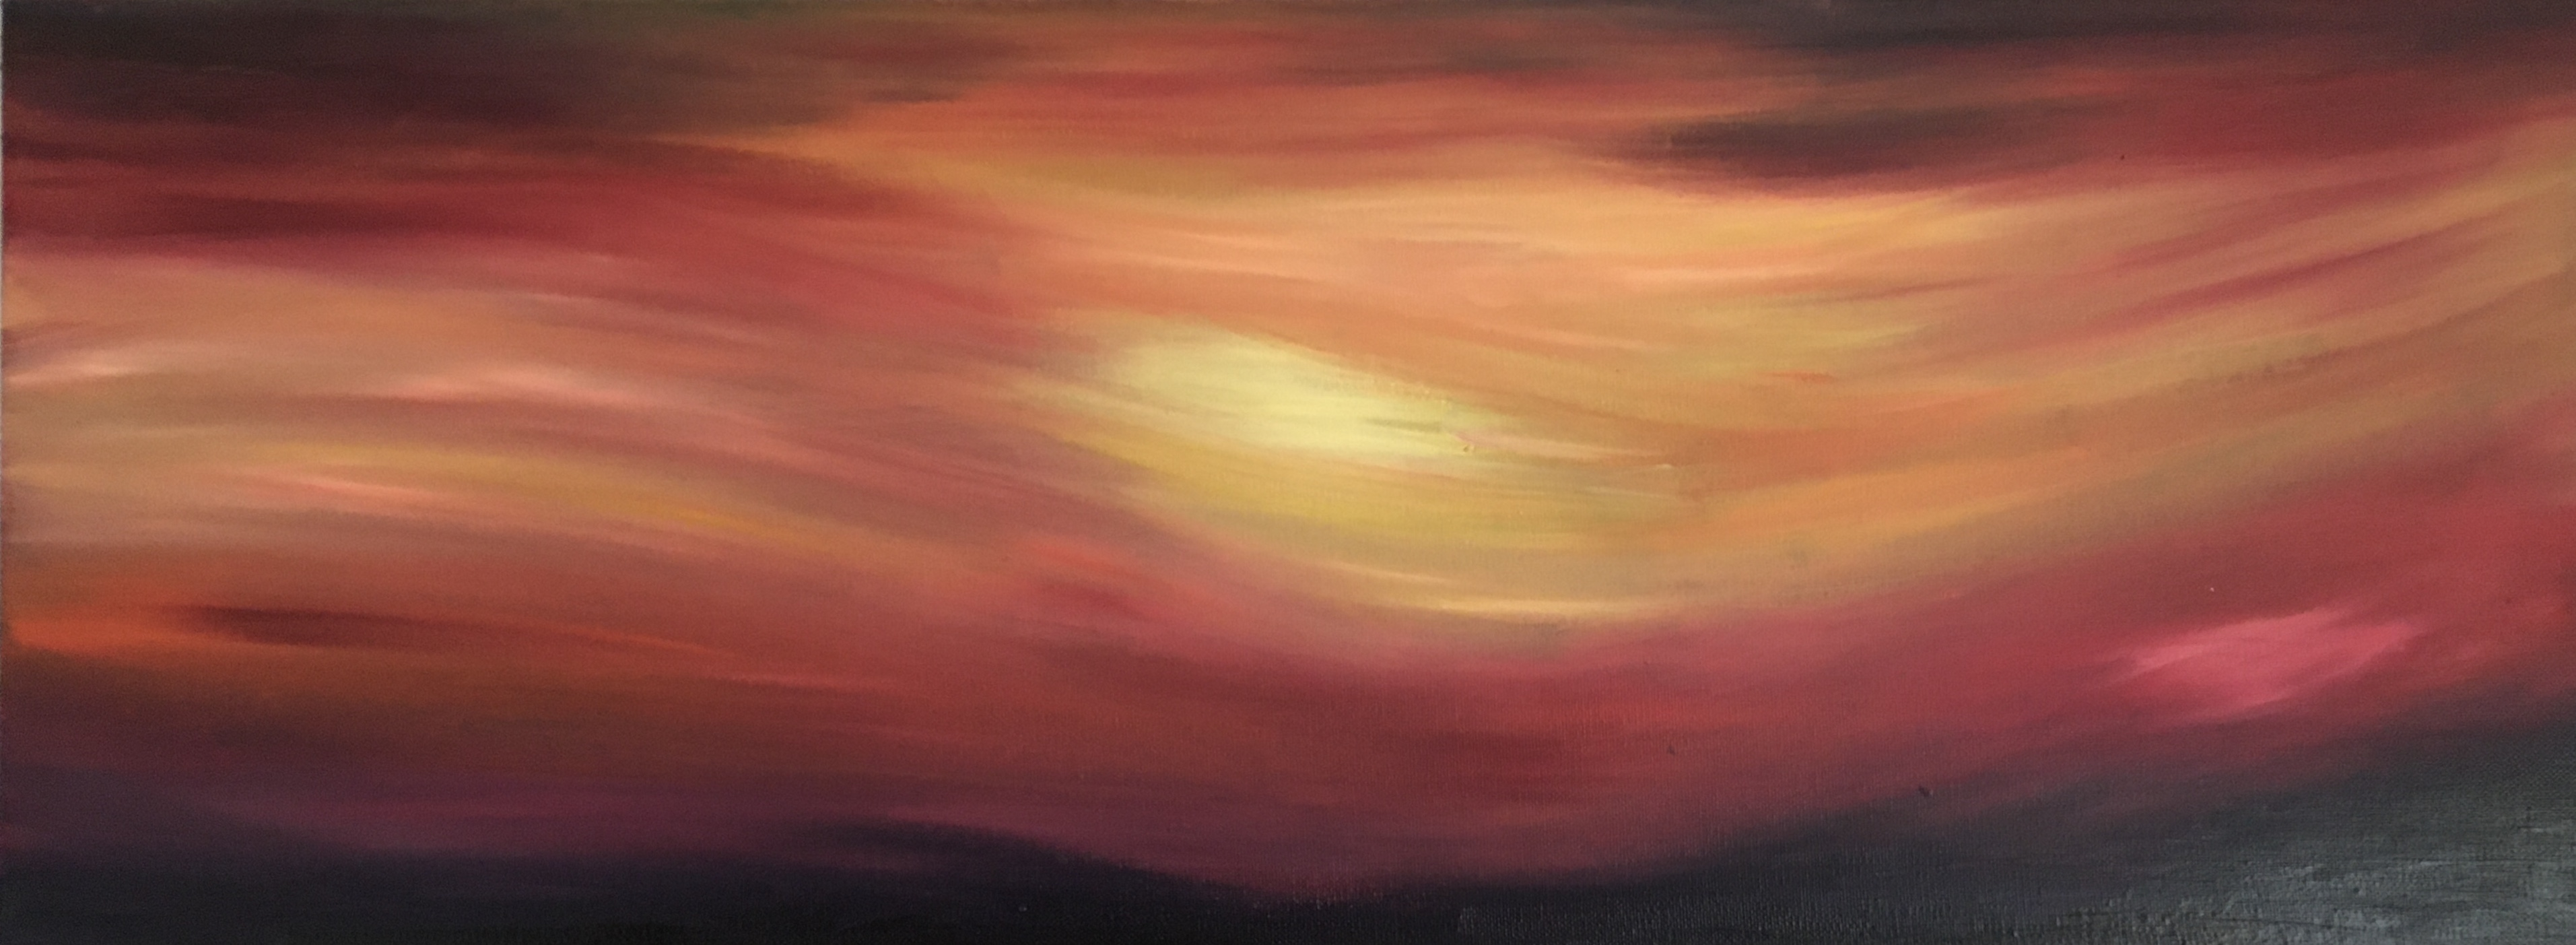 Patricia Aspinall, 'Sequence II - Sunset.'             Oil on canvas  Framed Size: 90cm x 40cm. £175